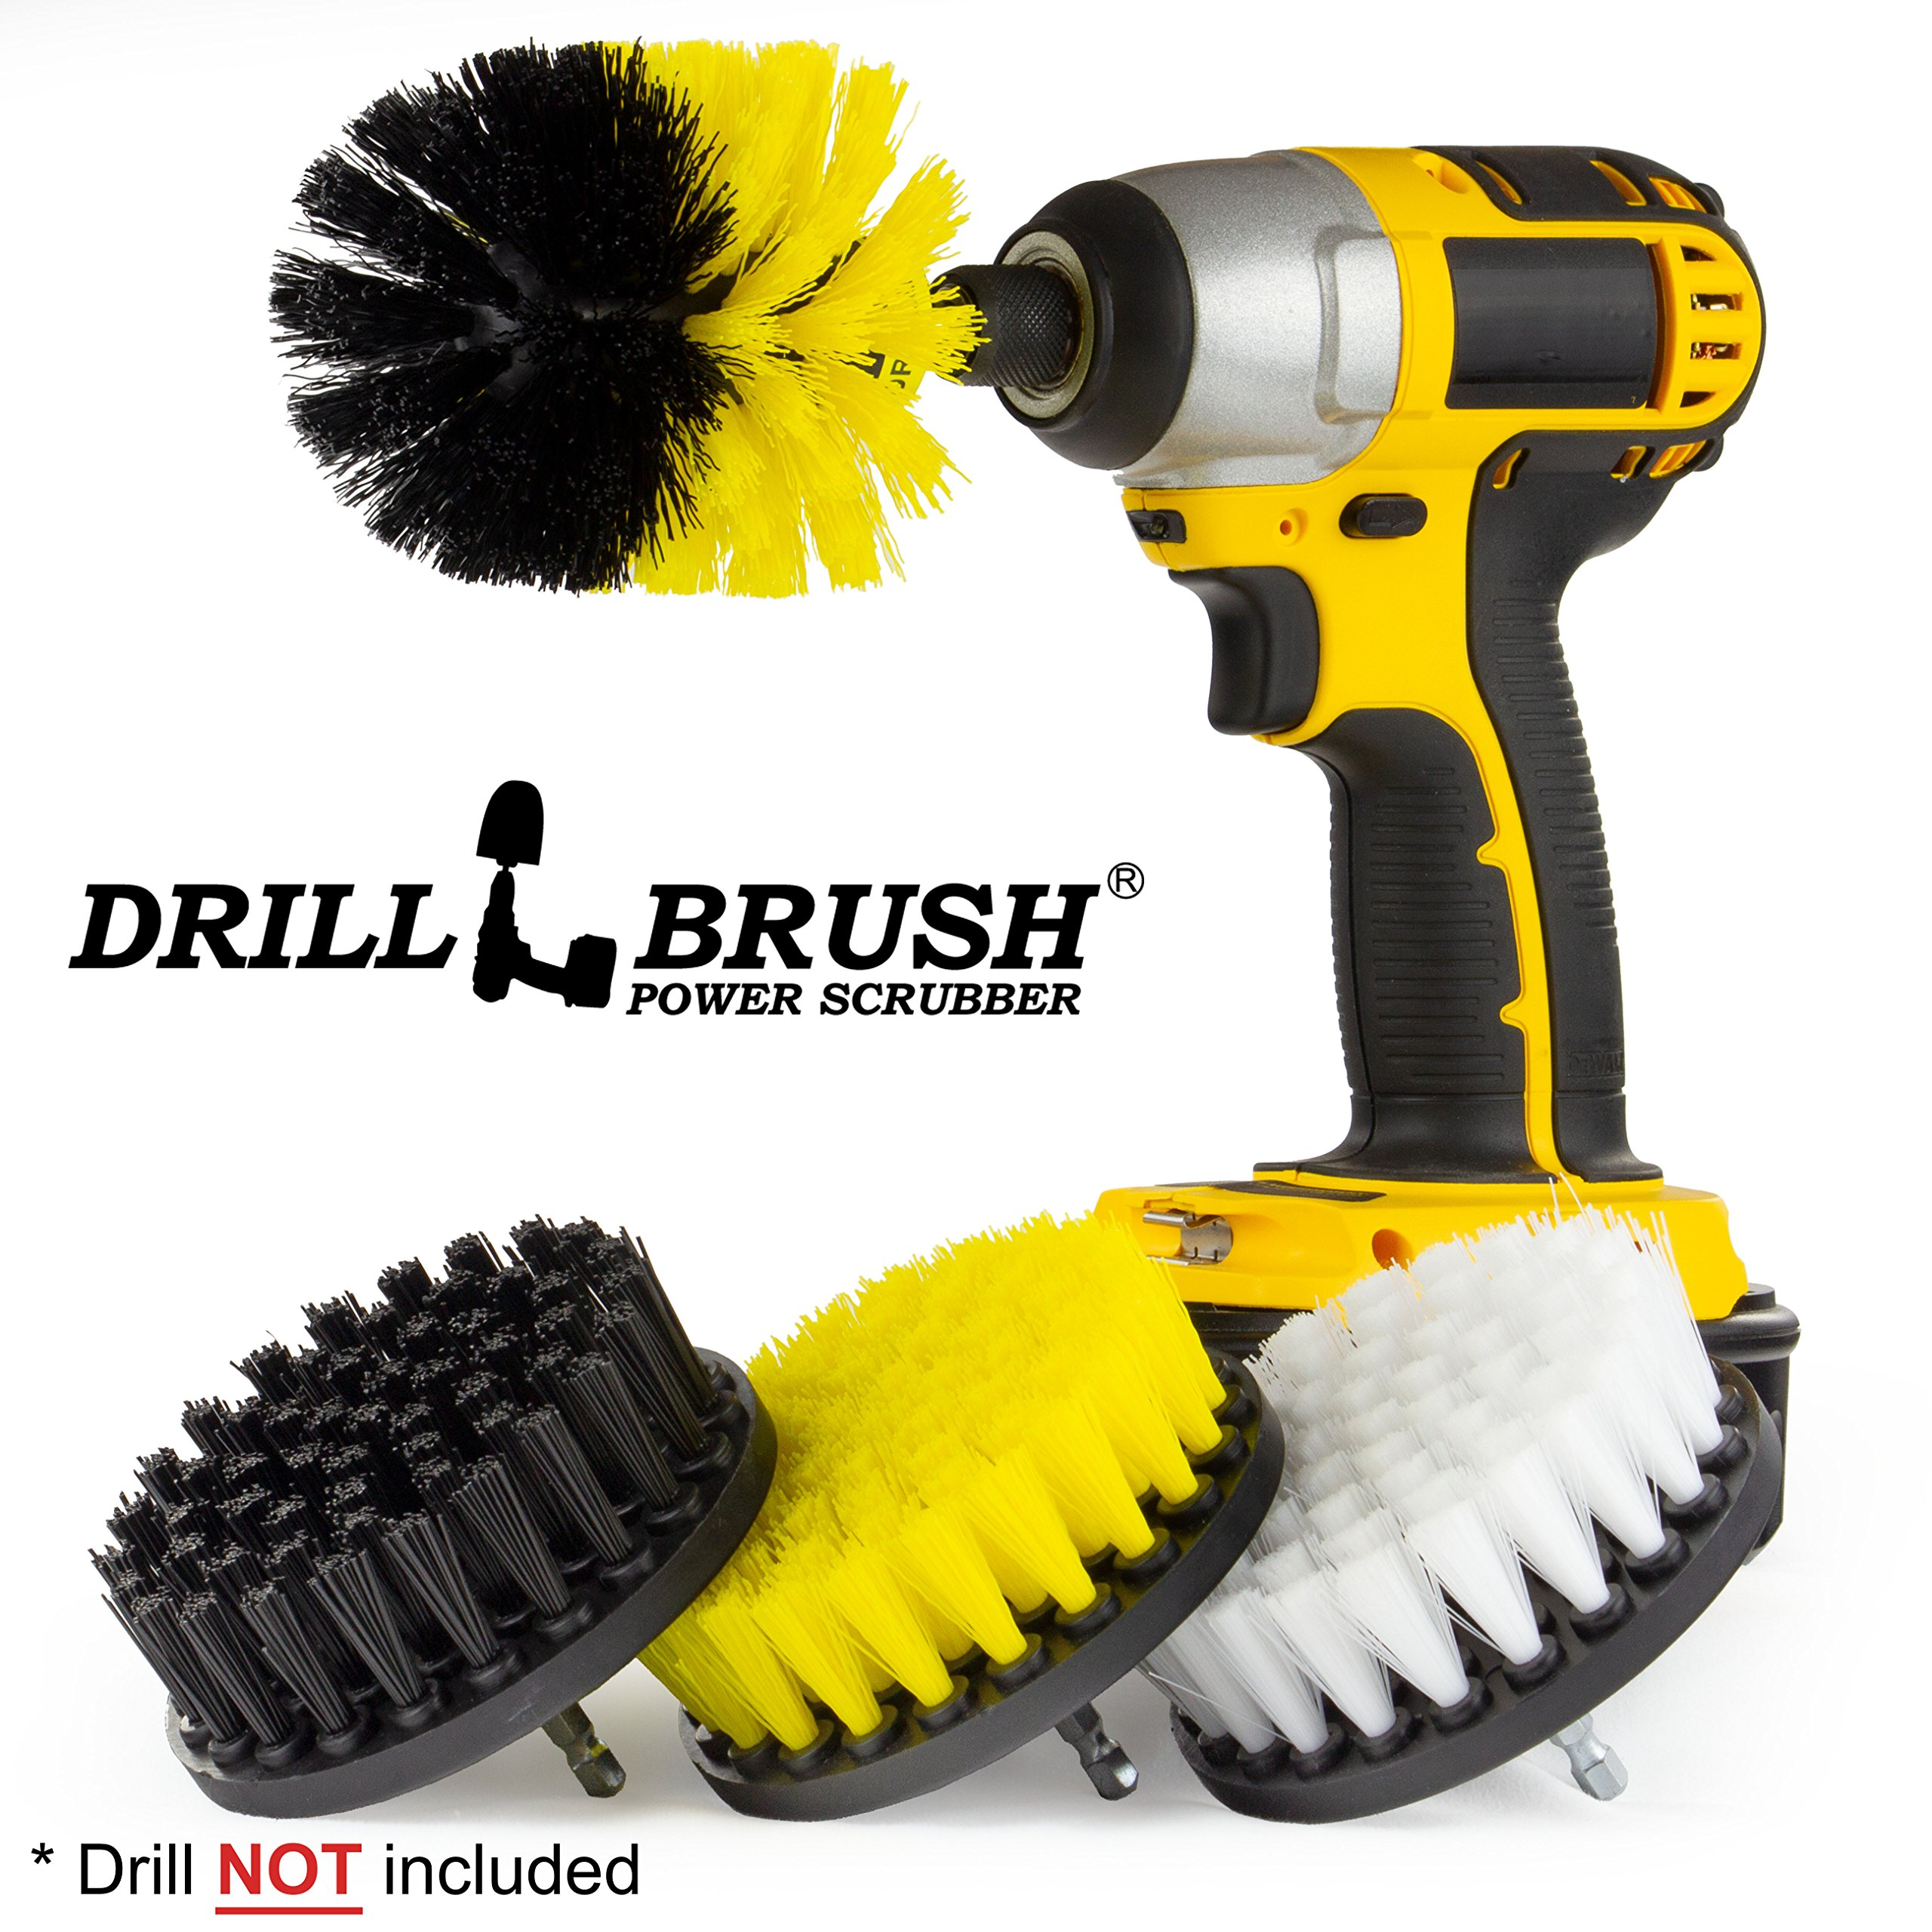 Cleaning Supplies - Bathroom Accessories - Shower Cleaner - Bath Mat - Shower Doors - Glass Cleaner - Carpet Cleaner - BBQ Tools - Cast Iron Skillet - Grill Brush - Grill Cleaner - Grout Brush by Drillbrush